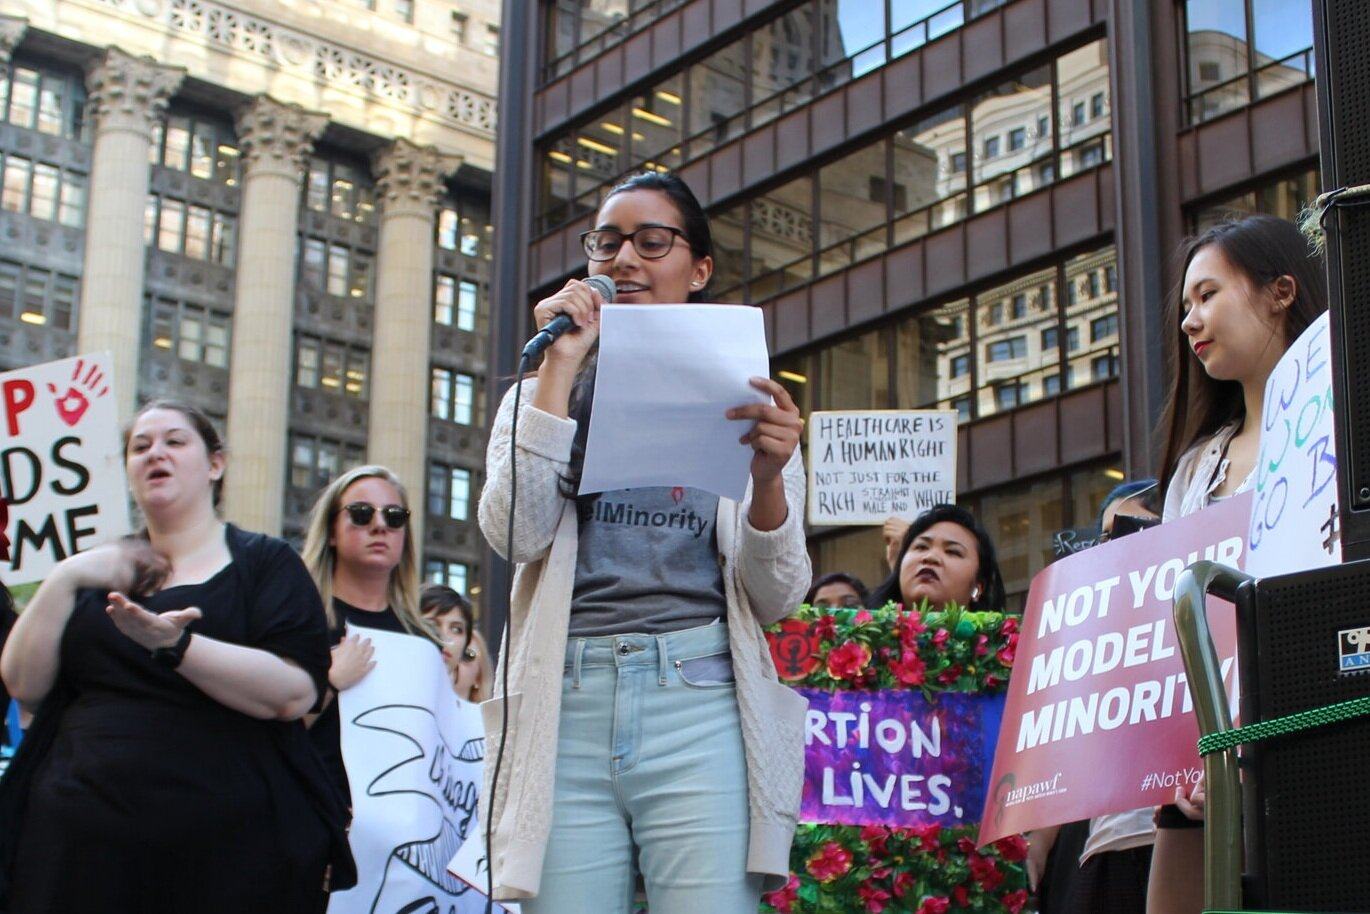 Jaspreet speaks at the Chicago Rally for Reproductive Justice.